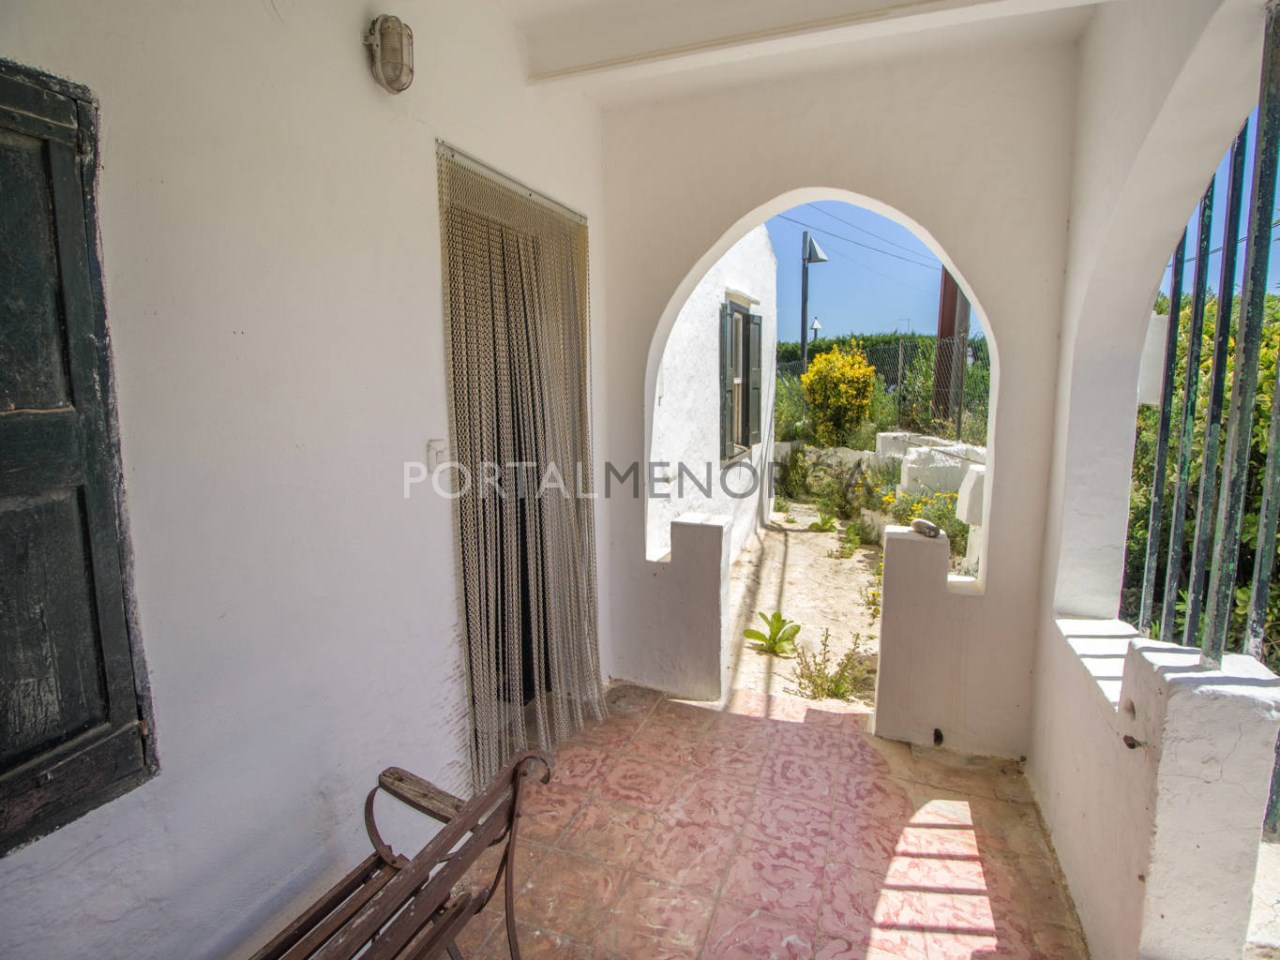 Country house for sale next to Sant Lluís